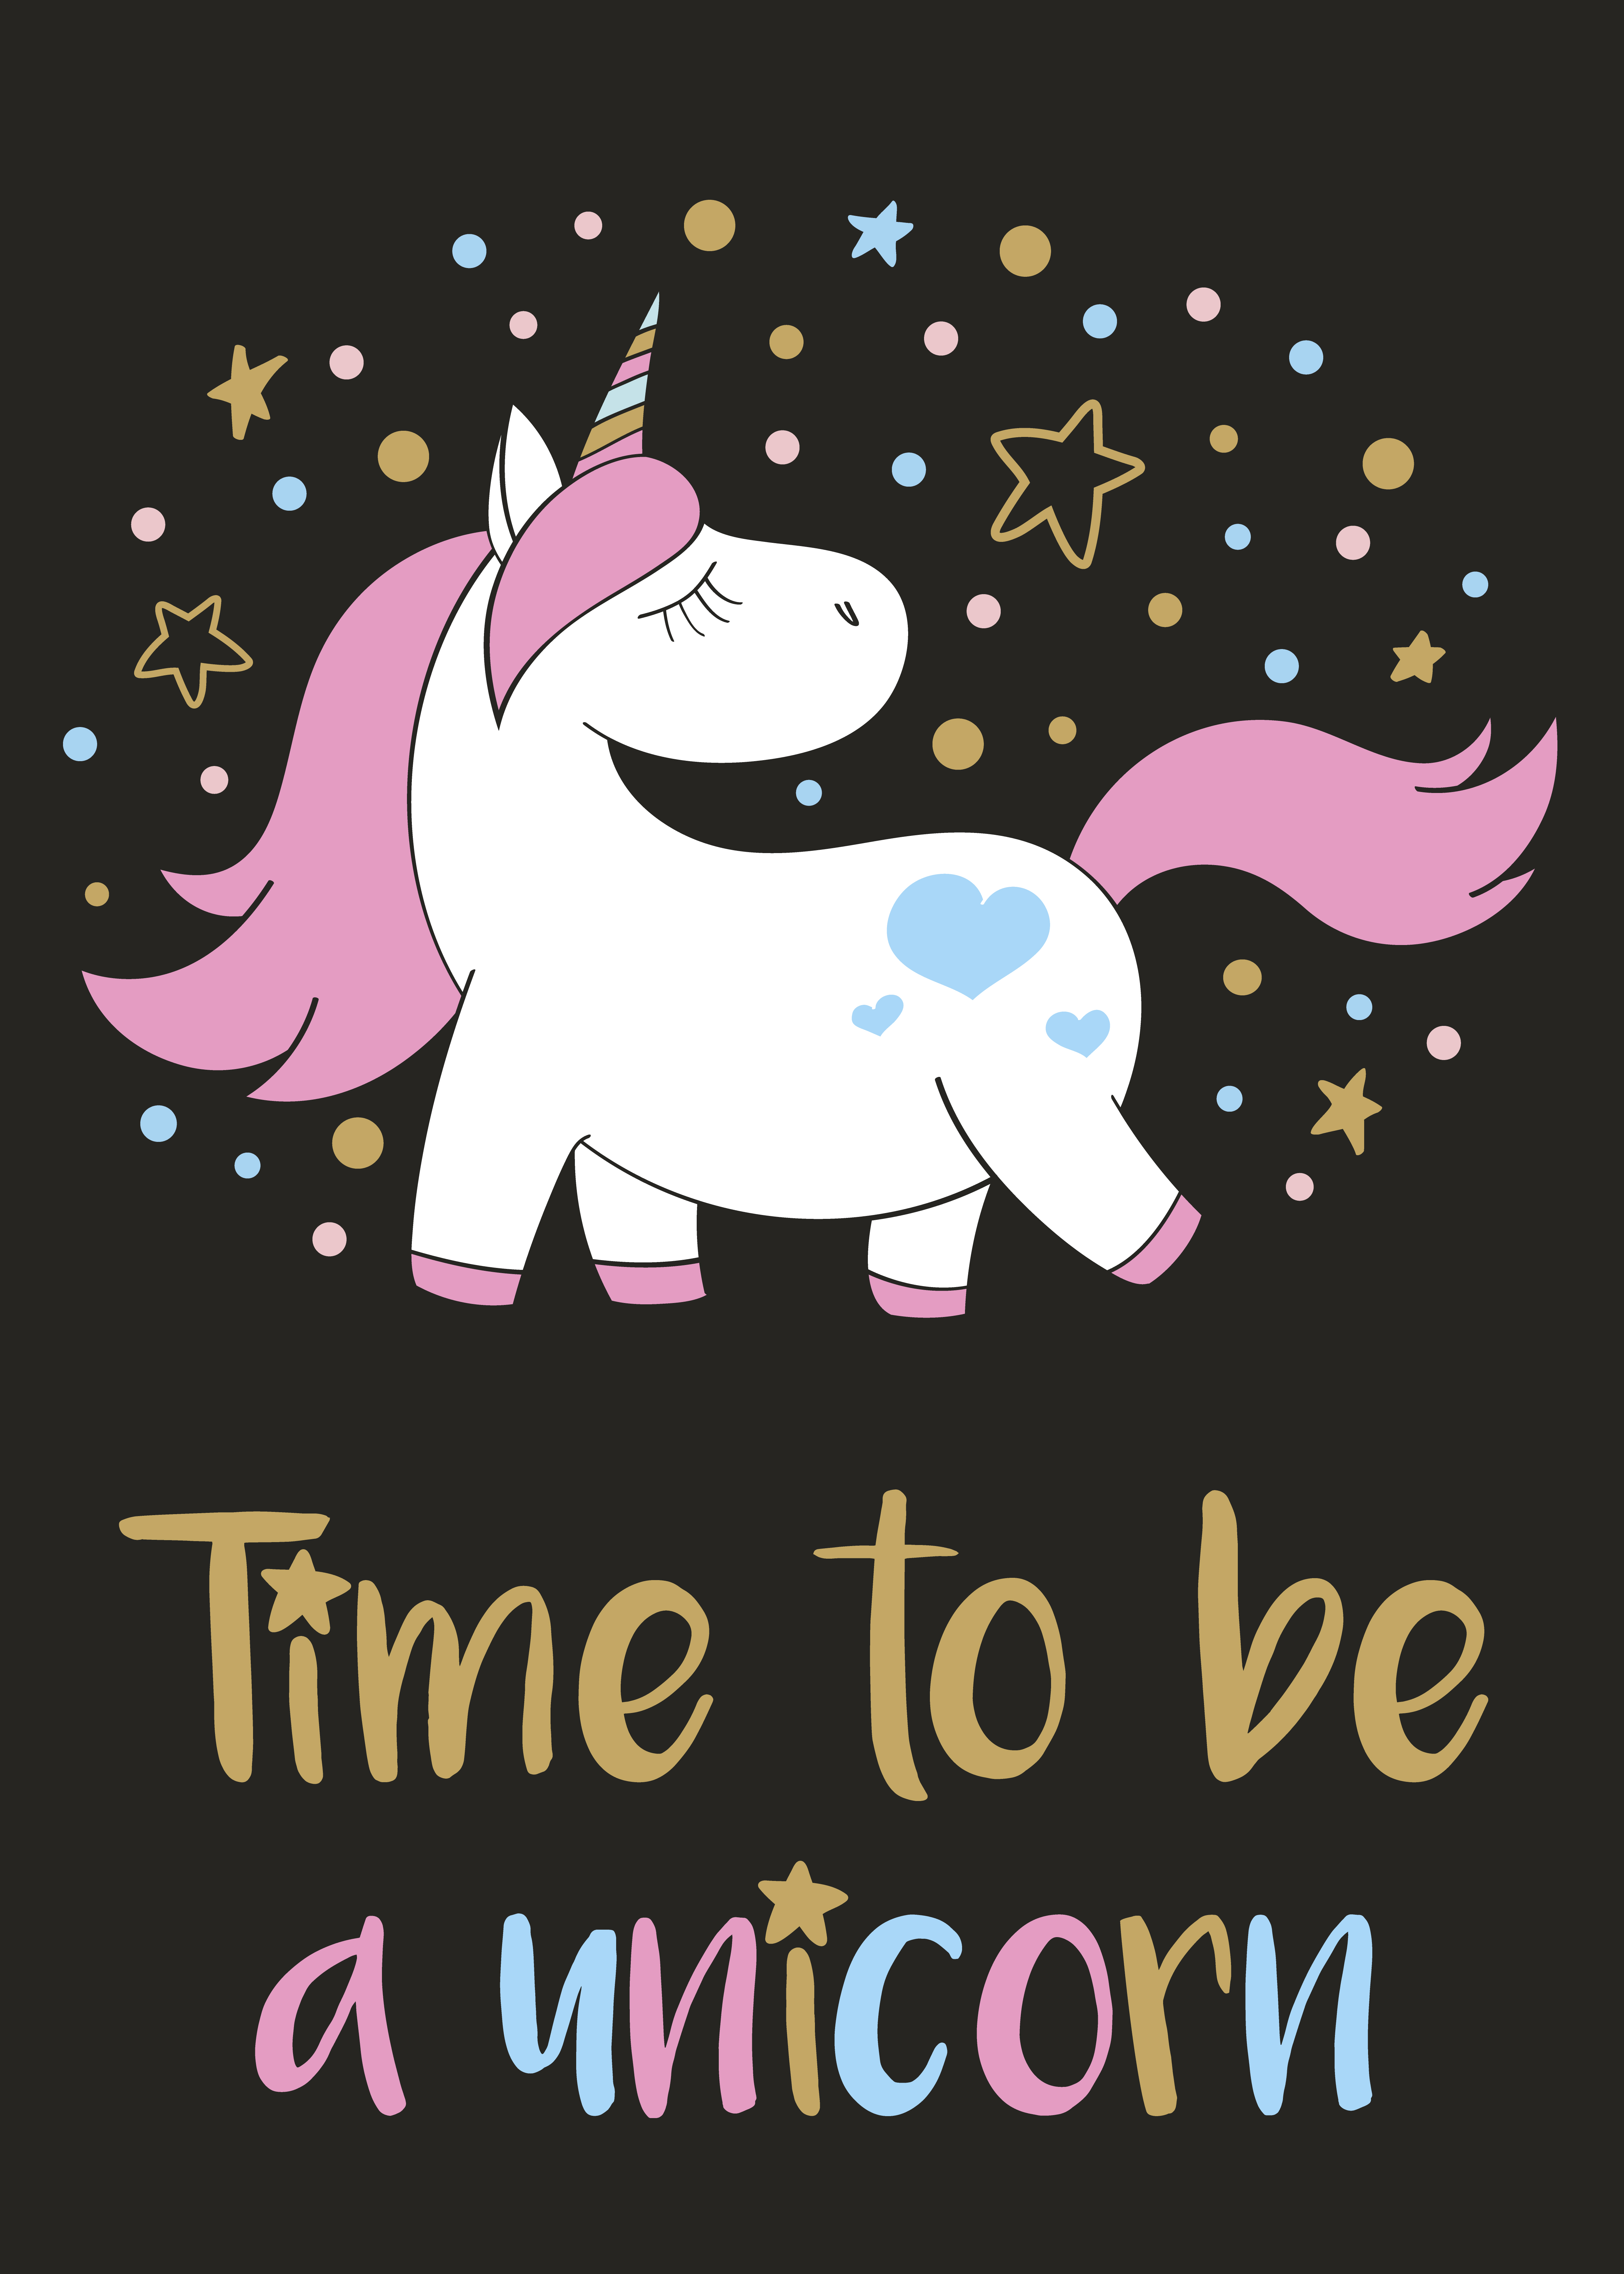 magic cute unicorn in cartoon style with hand lettering